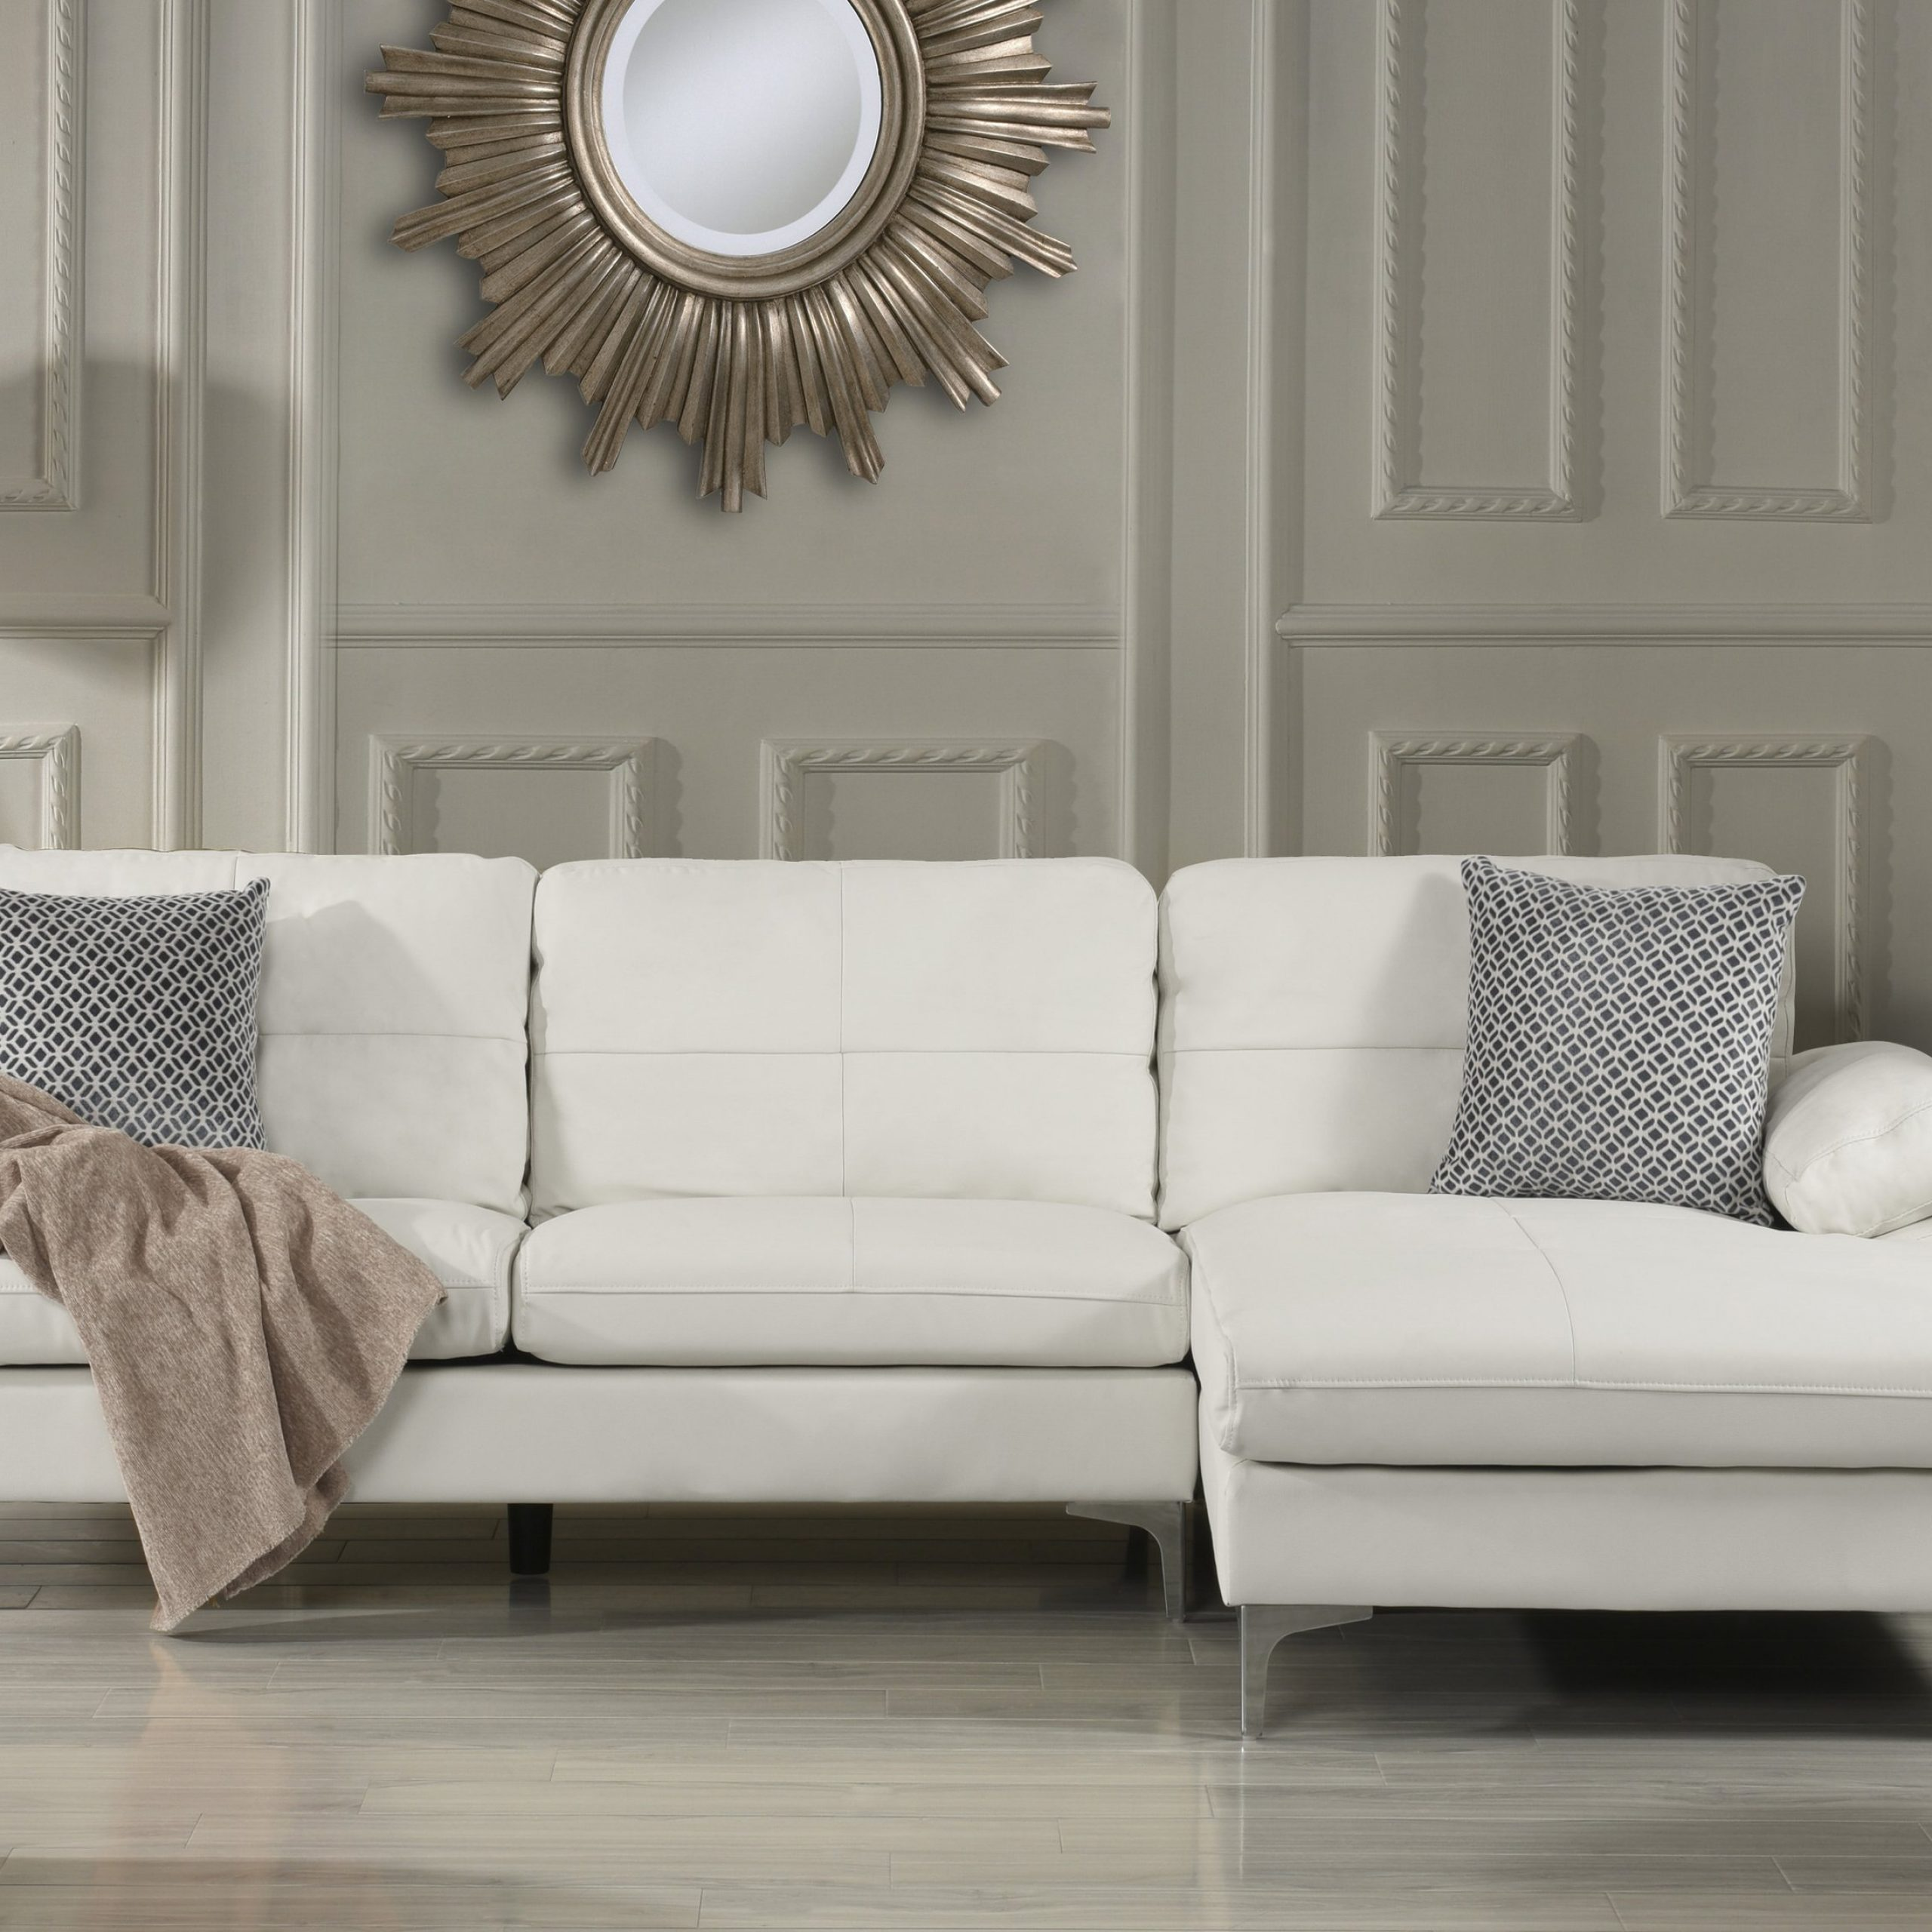 Large Leather Sectional Sofa, L Shape Couch With Chaise Throughout Oversized Sectional Sofas (View 4 of 15)